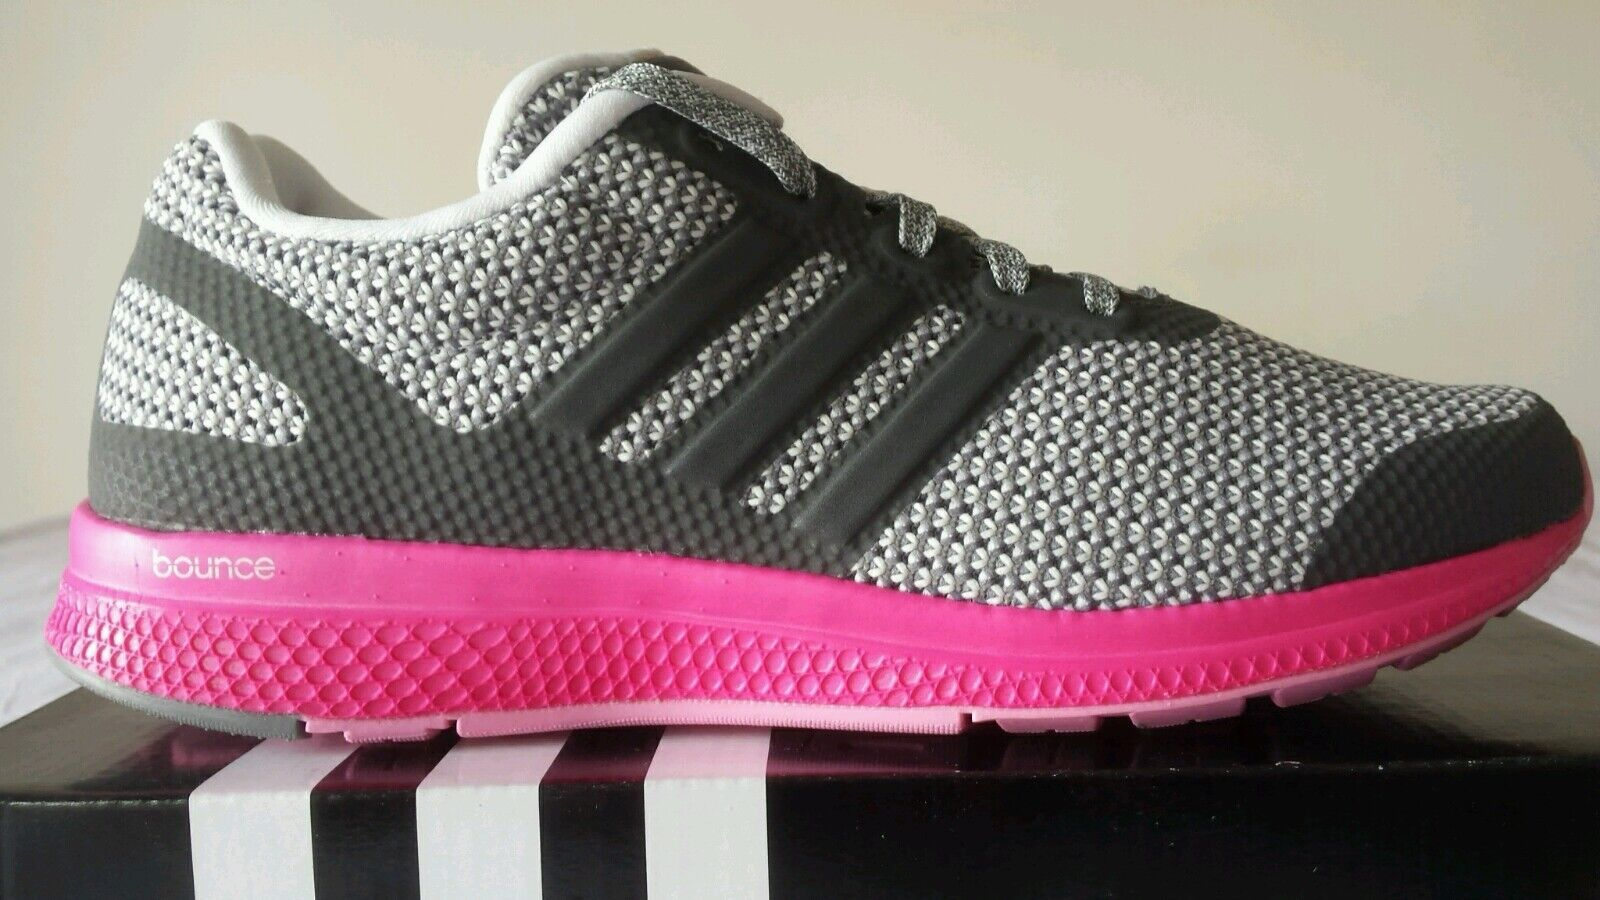 ADIDAS TRAINER MANA BOUNCE NEW GRIGIA FUXIA N.44 BELLISSIME NEW BOUNCE OKKSPORT NIKE 97 044a88